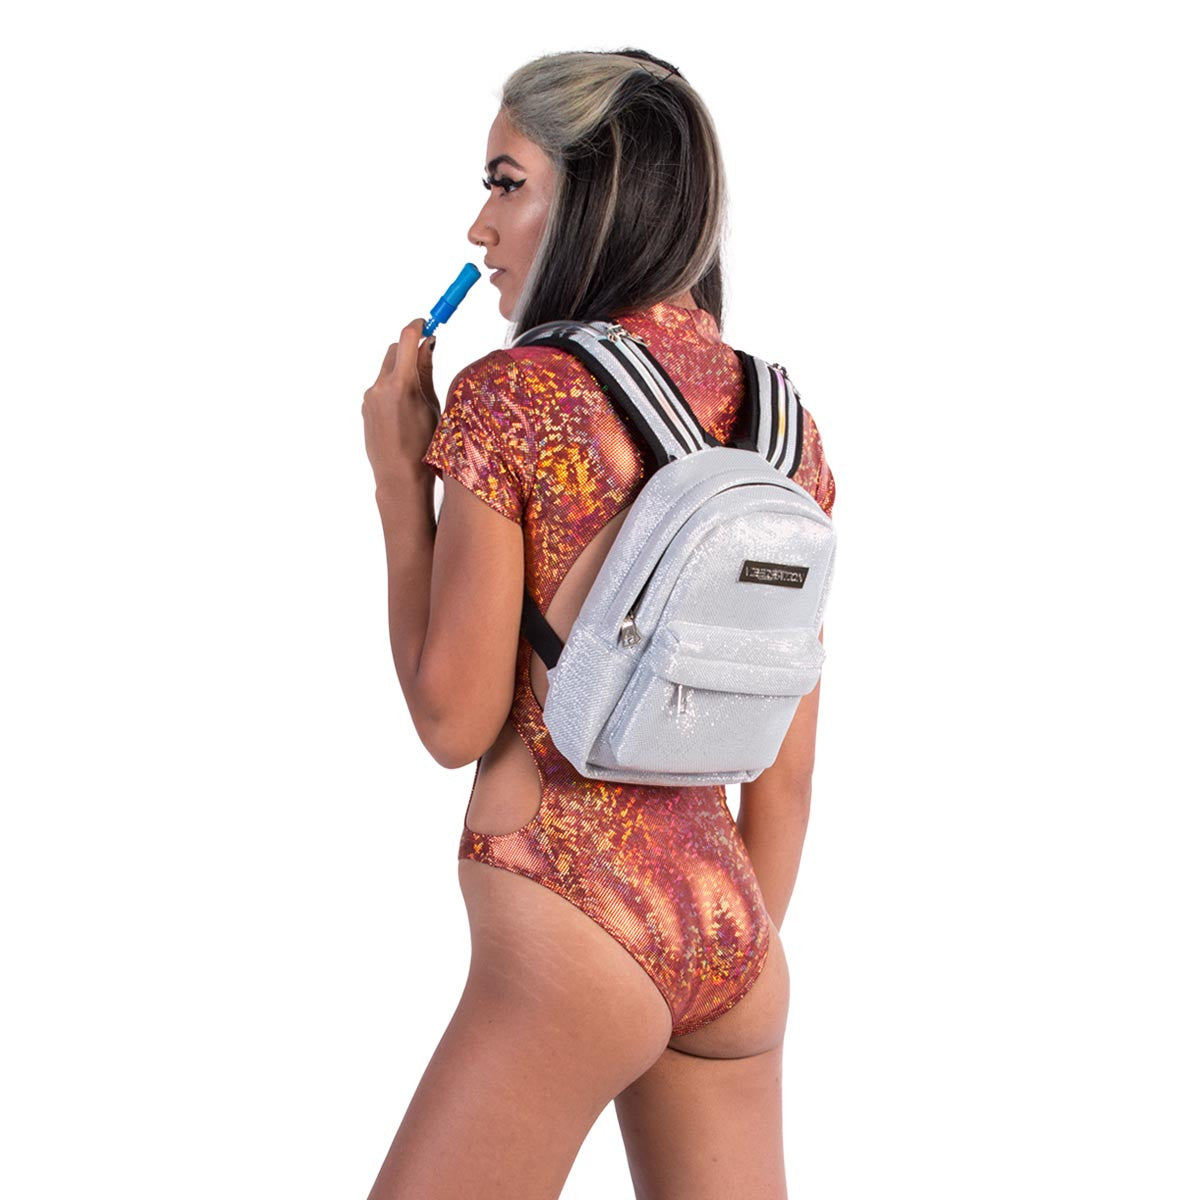 Model wearing Titanium Glitter small hydration pack